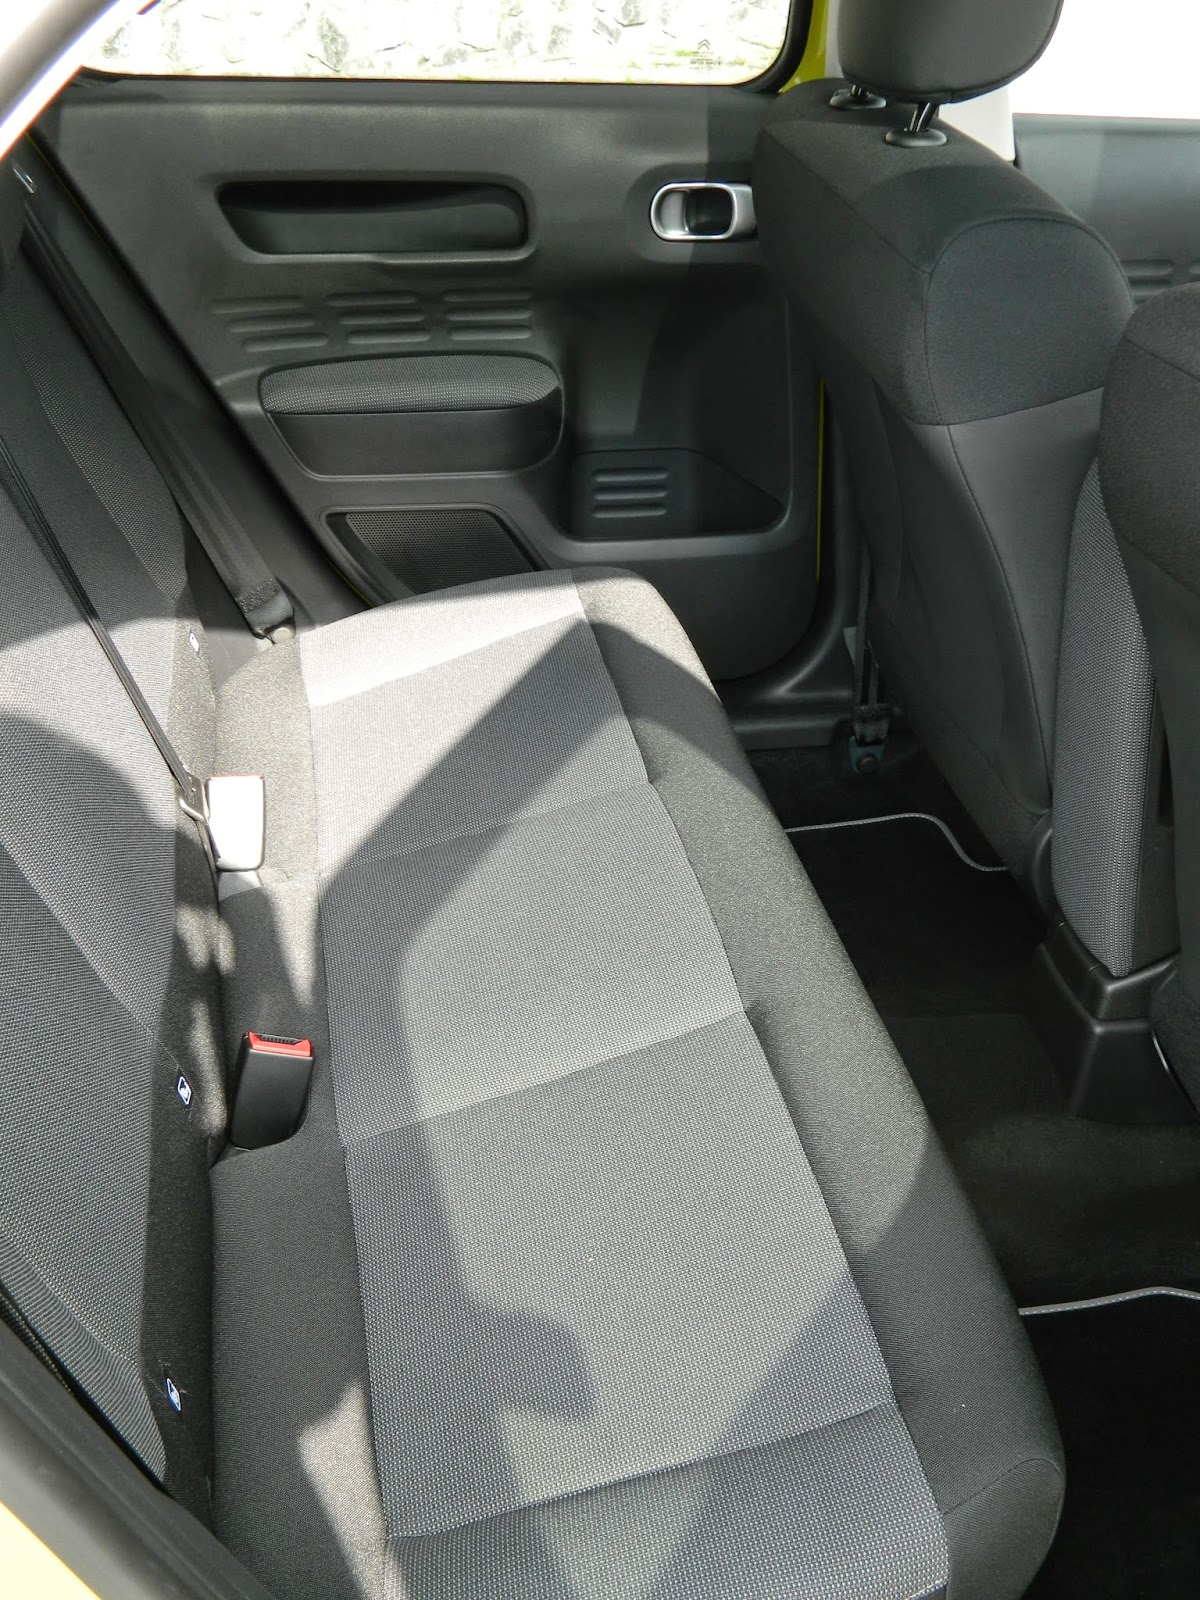 Citroen C4 Cactus Rear Bench Seat